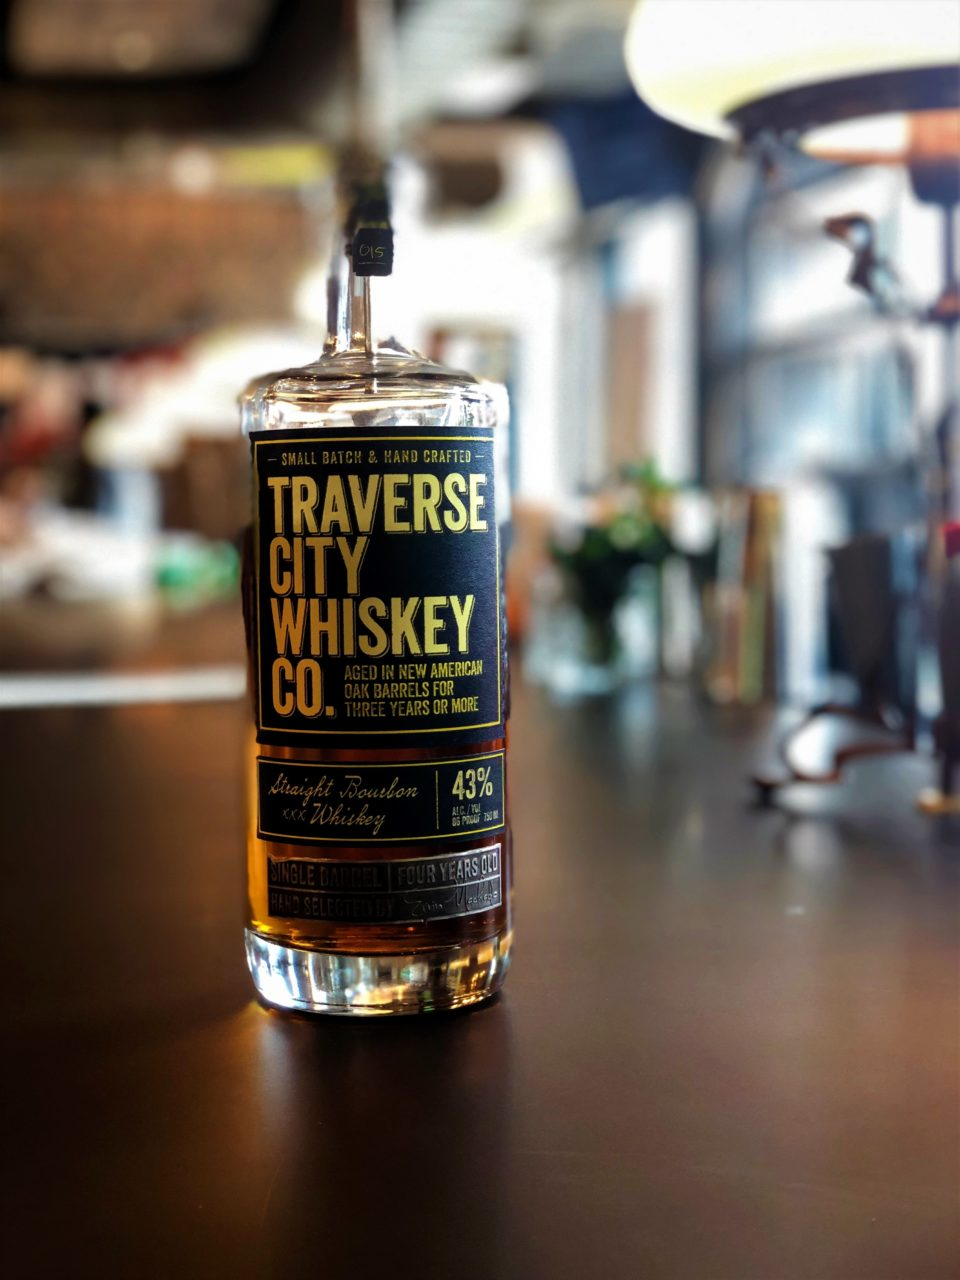 Bottle of Traverse City Whiskey